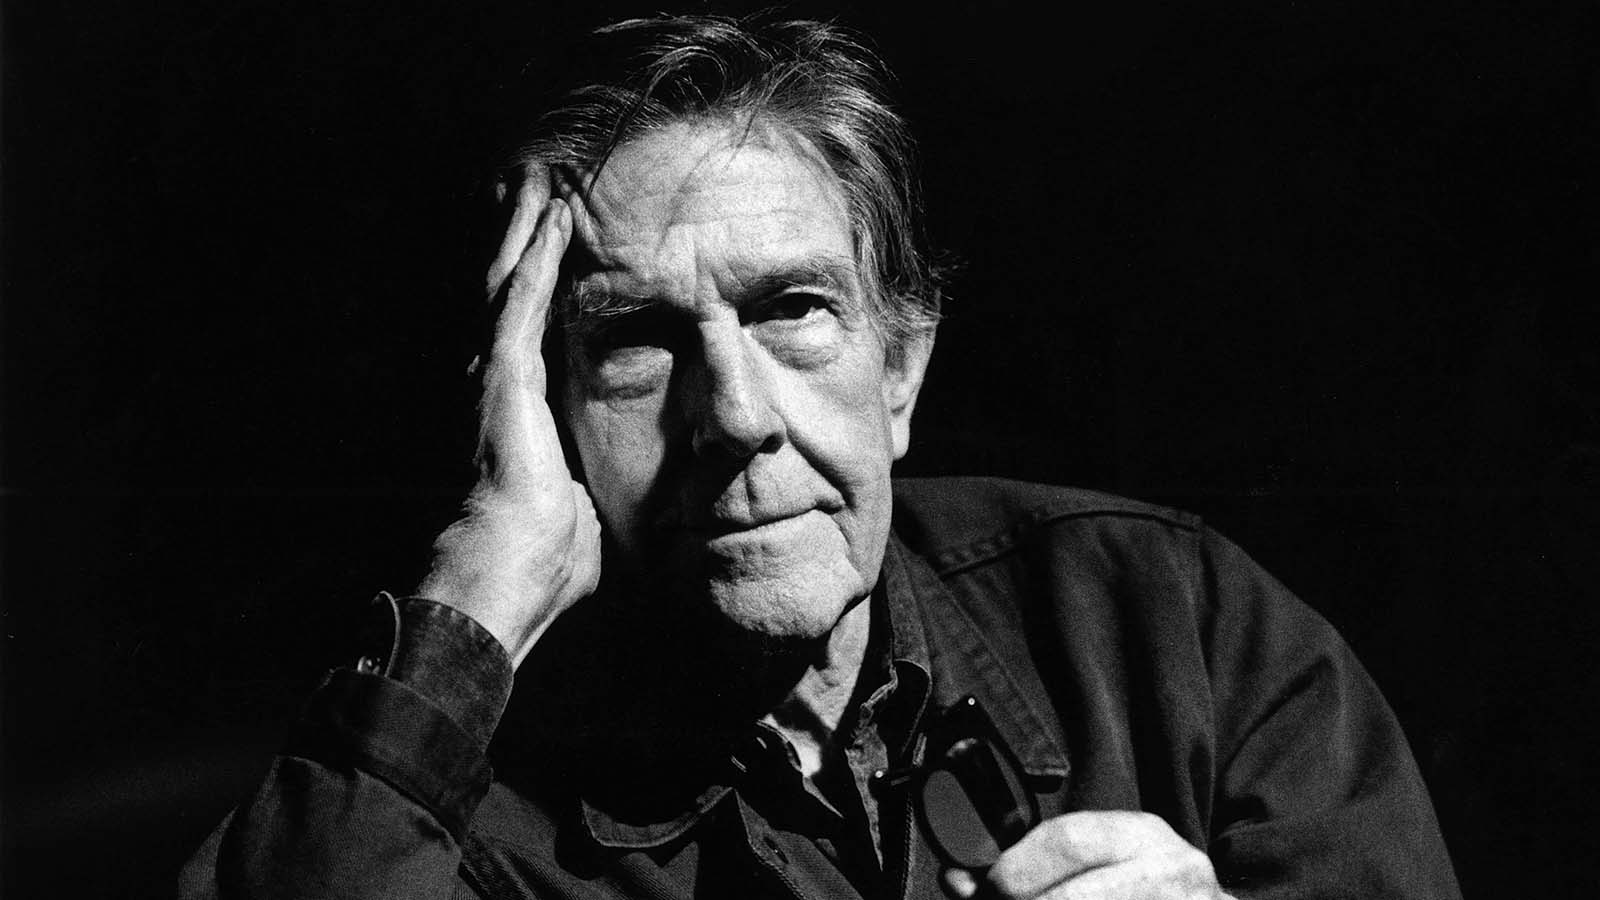 Meet John Cage, the Innovative Composer Behind the 639-year-long Concert